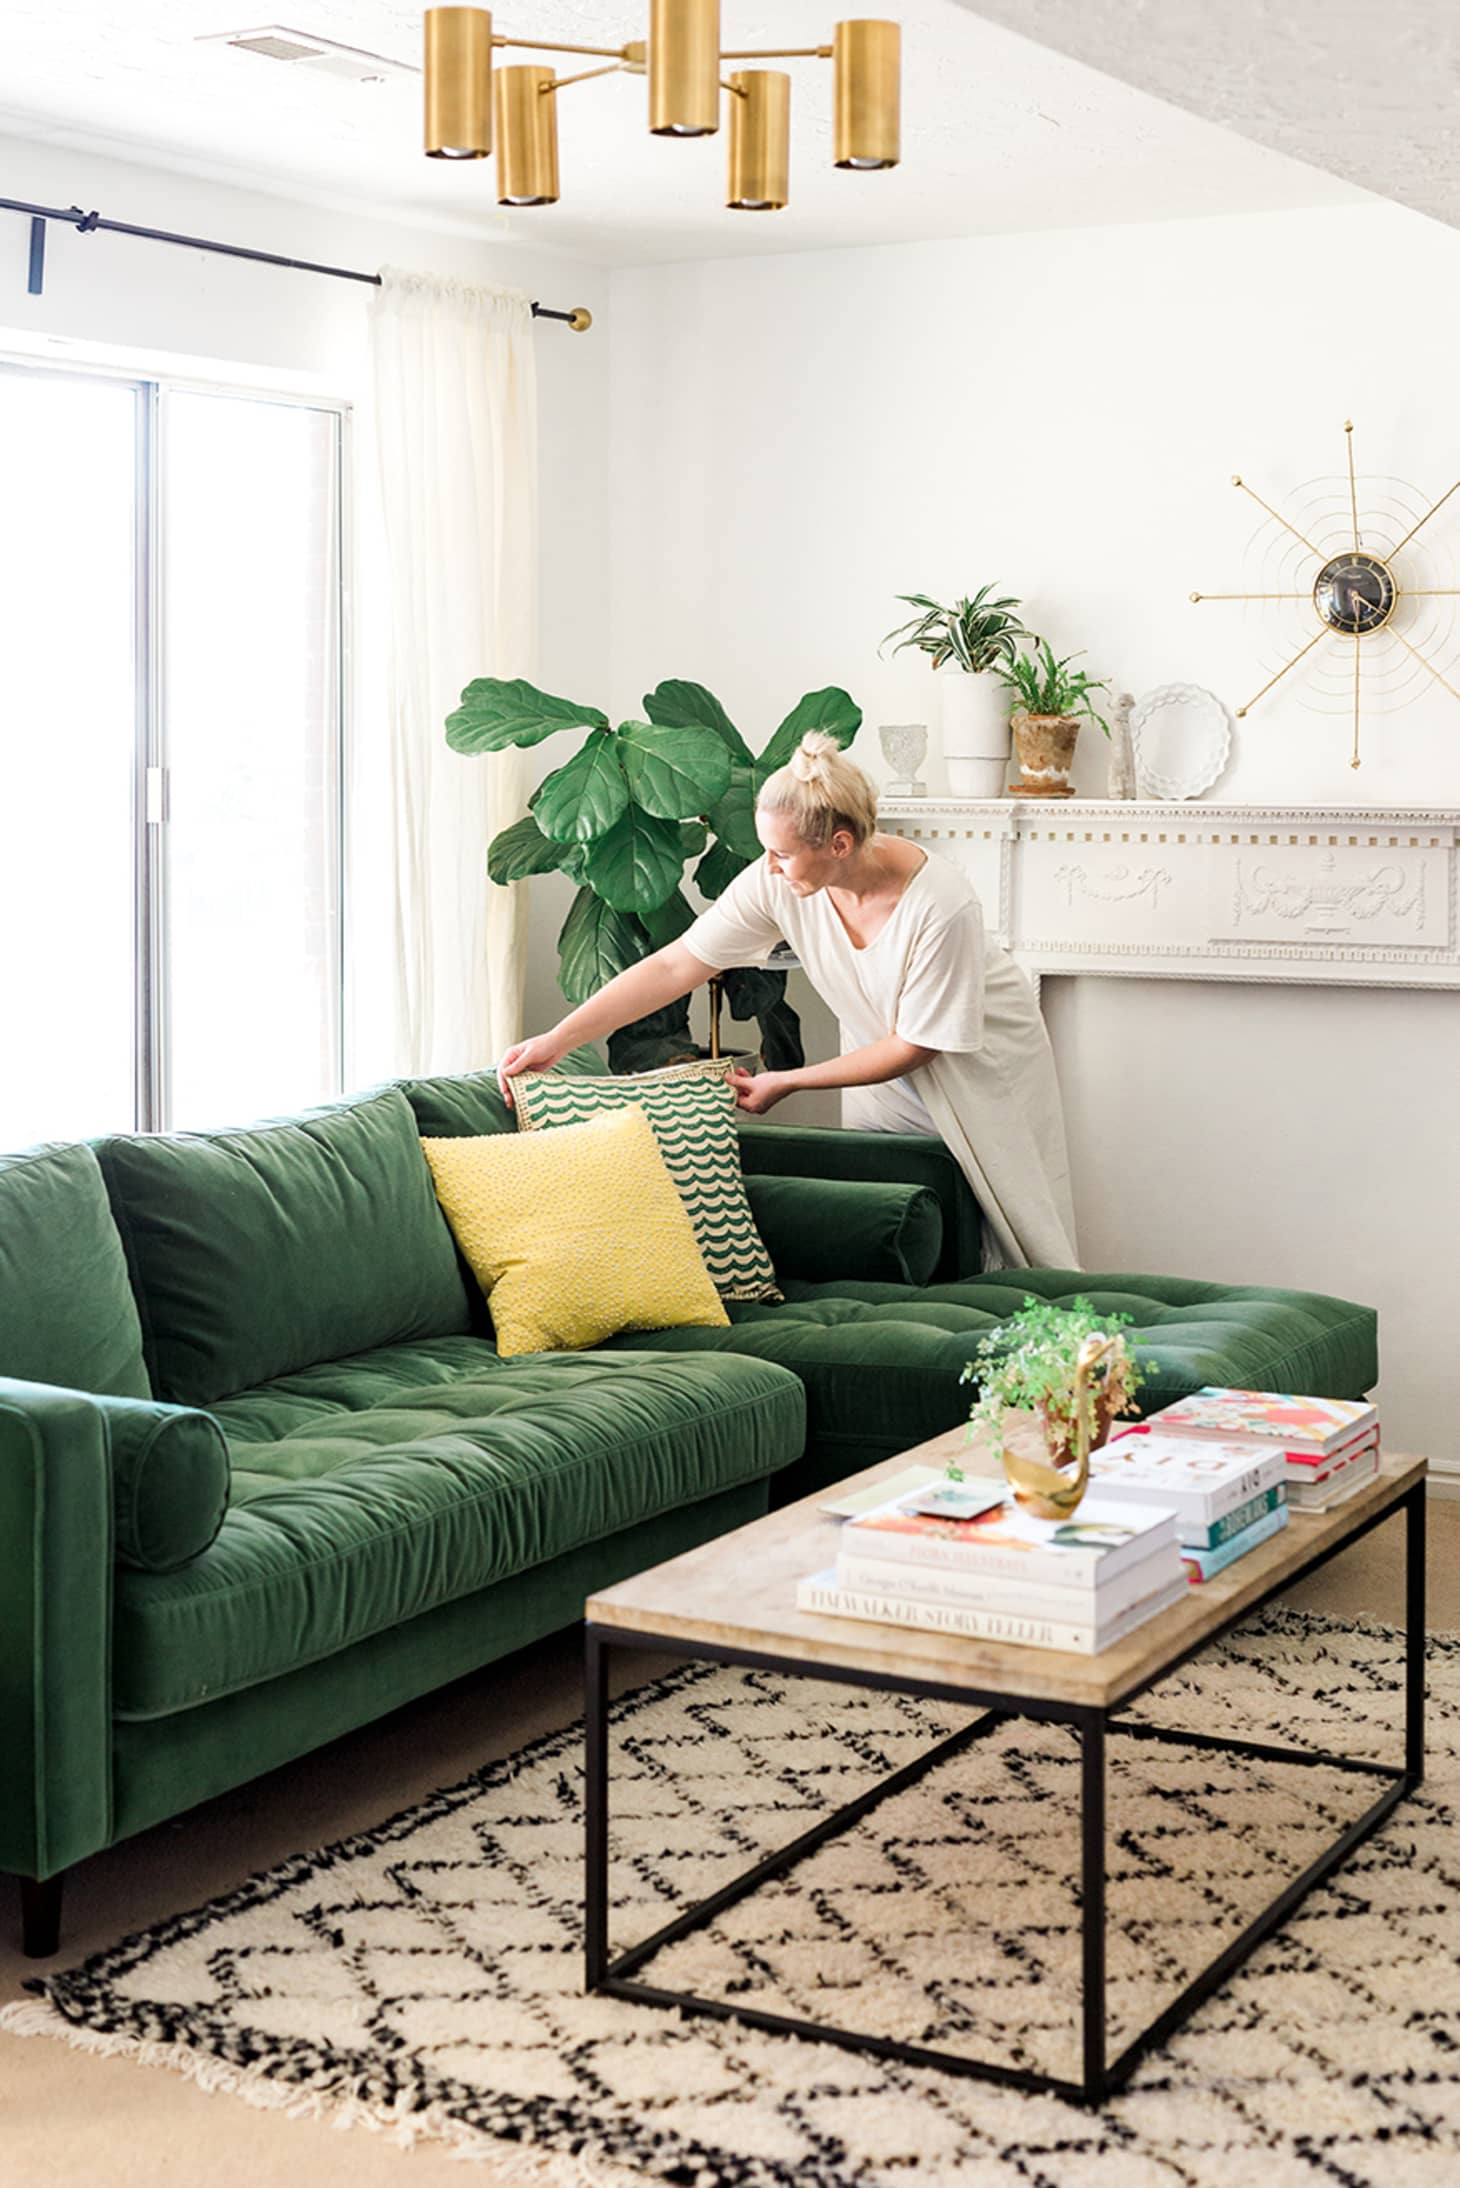 The Couch Trend For 2017: Stylish Emerald Green Sofas